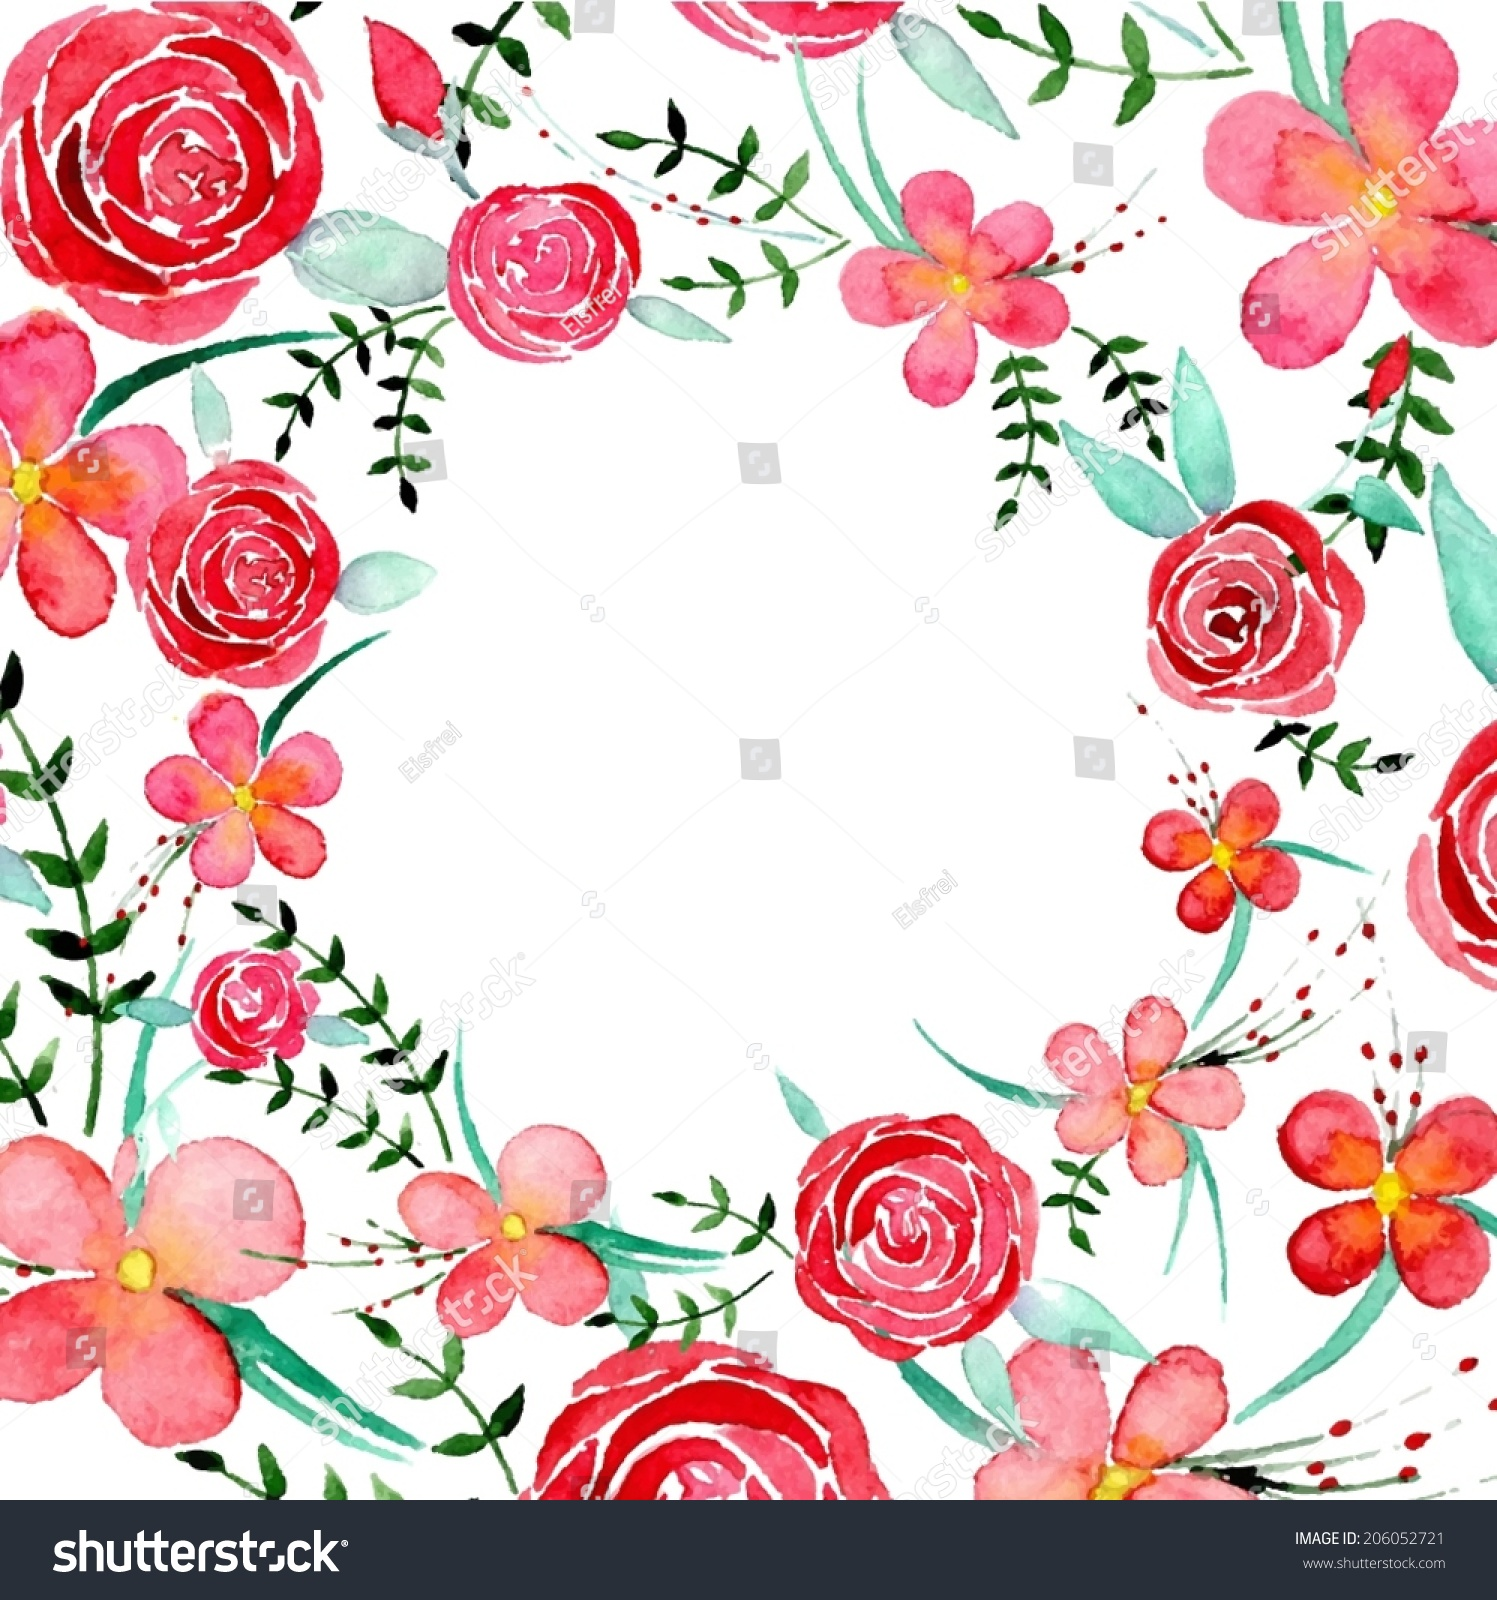 Watercolor round floral background in vector stock vector clipart me - Watercolor Flowers Circle Frame Vector Format Stock Vector